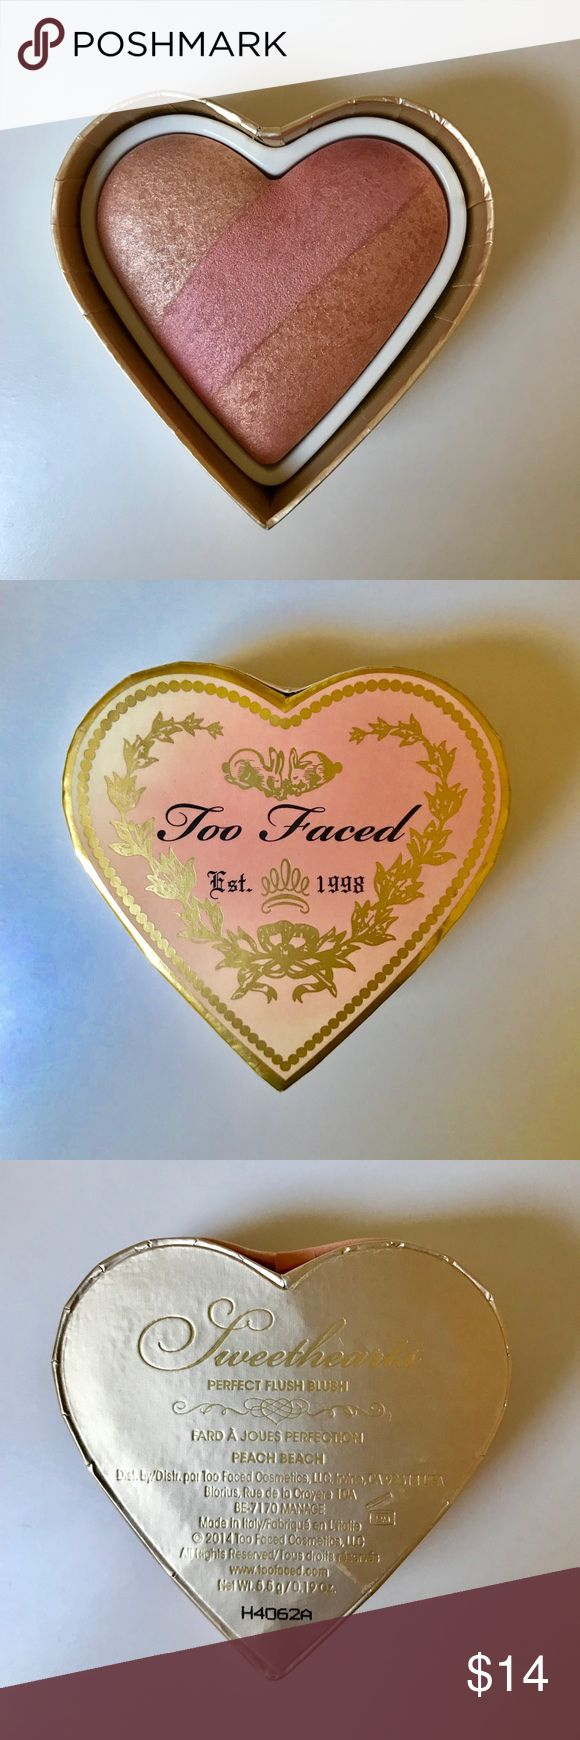 Too Faced Sweethearts Perfect Flush Blush Too Faced sweethearts perfect flush blush in peach beach. This is new and unused, but the box is faded because it was in a clear plastic container on my shelf. Too Faced Makeup Blush